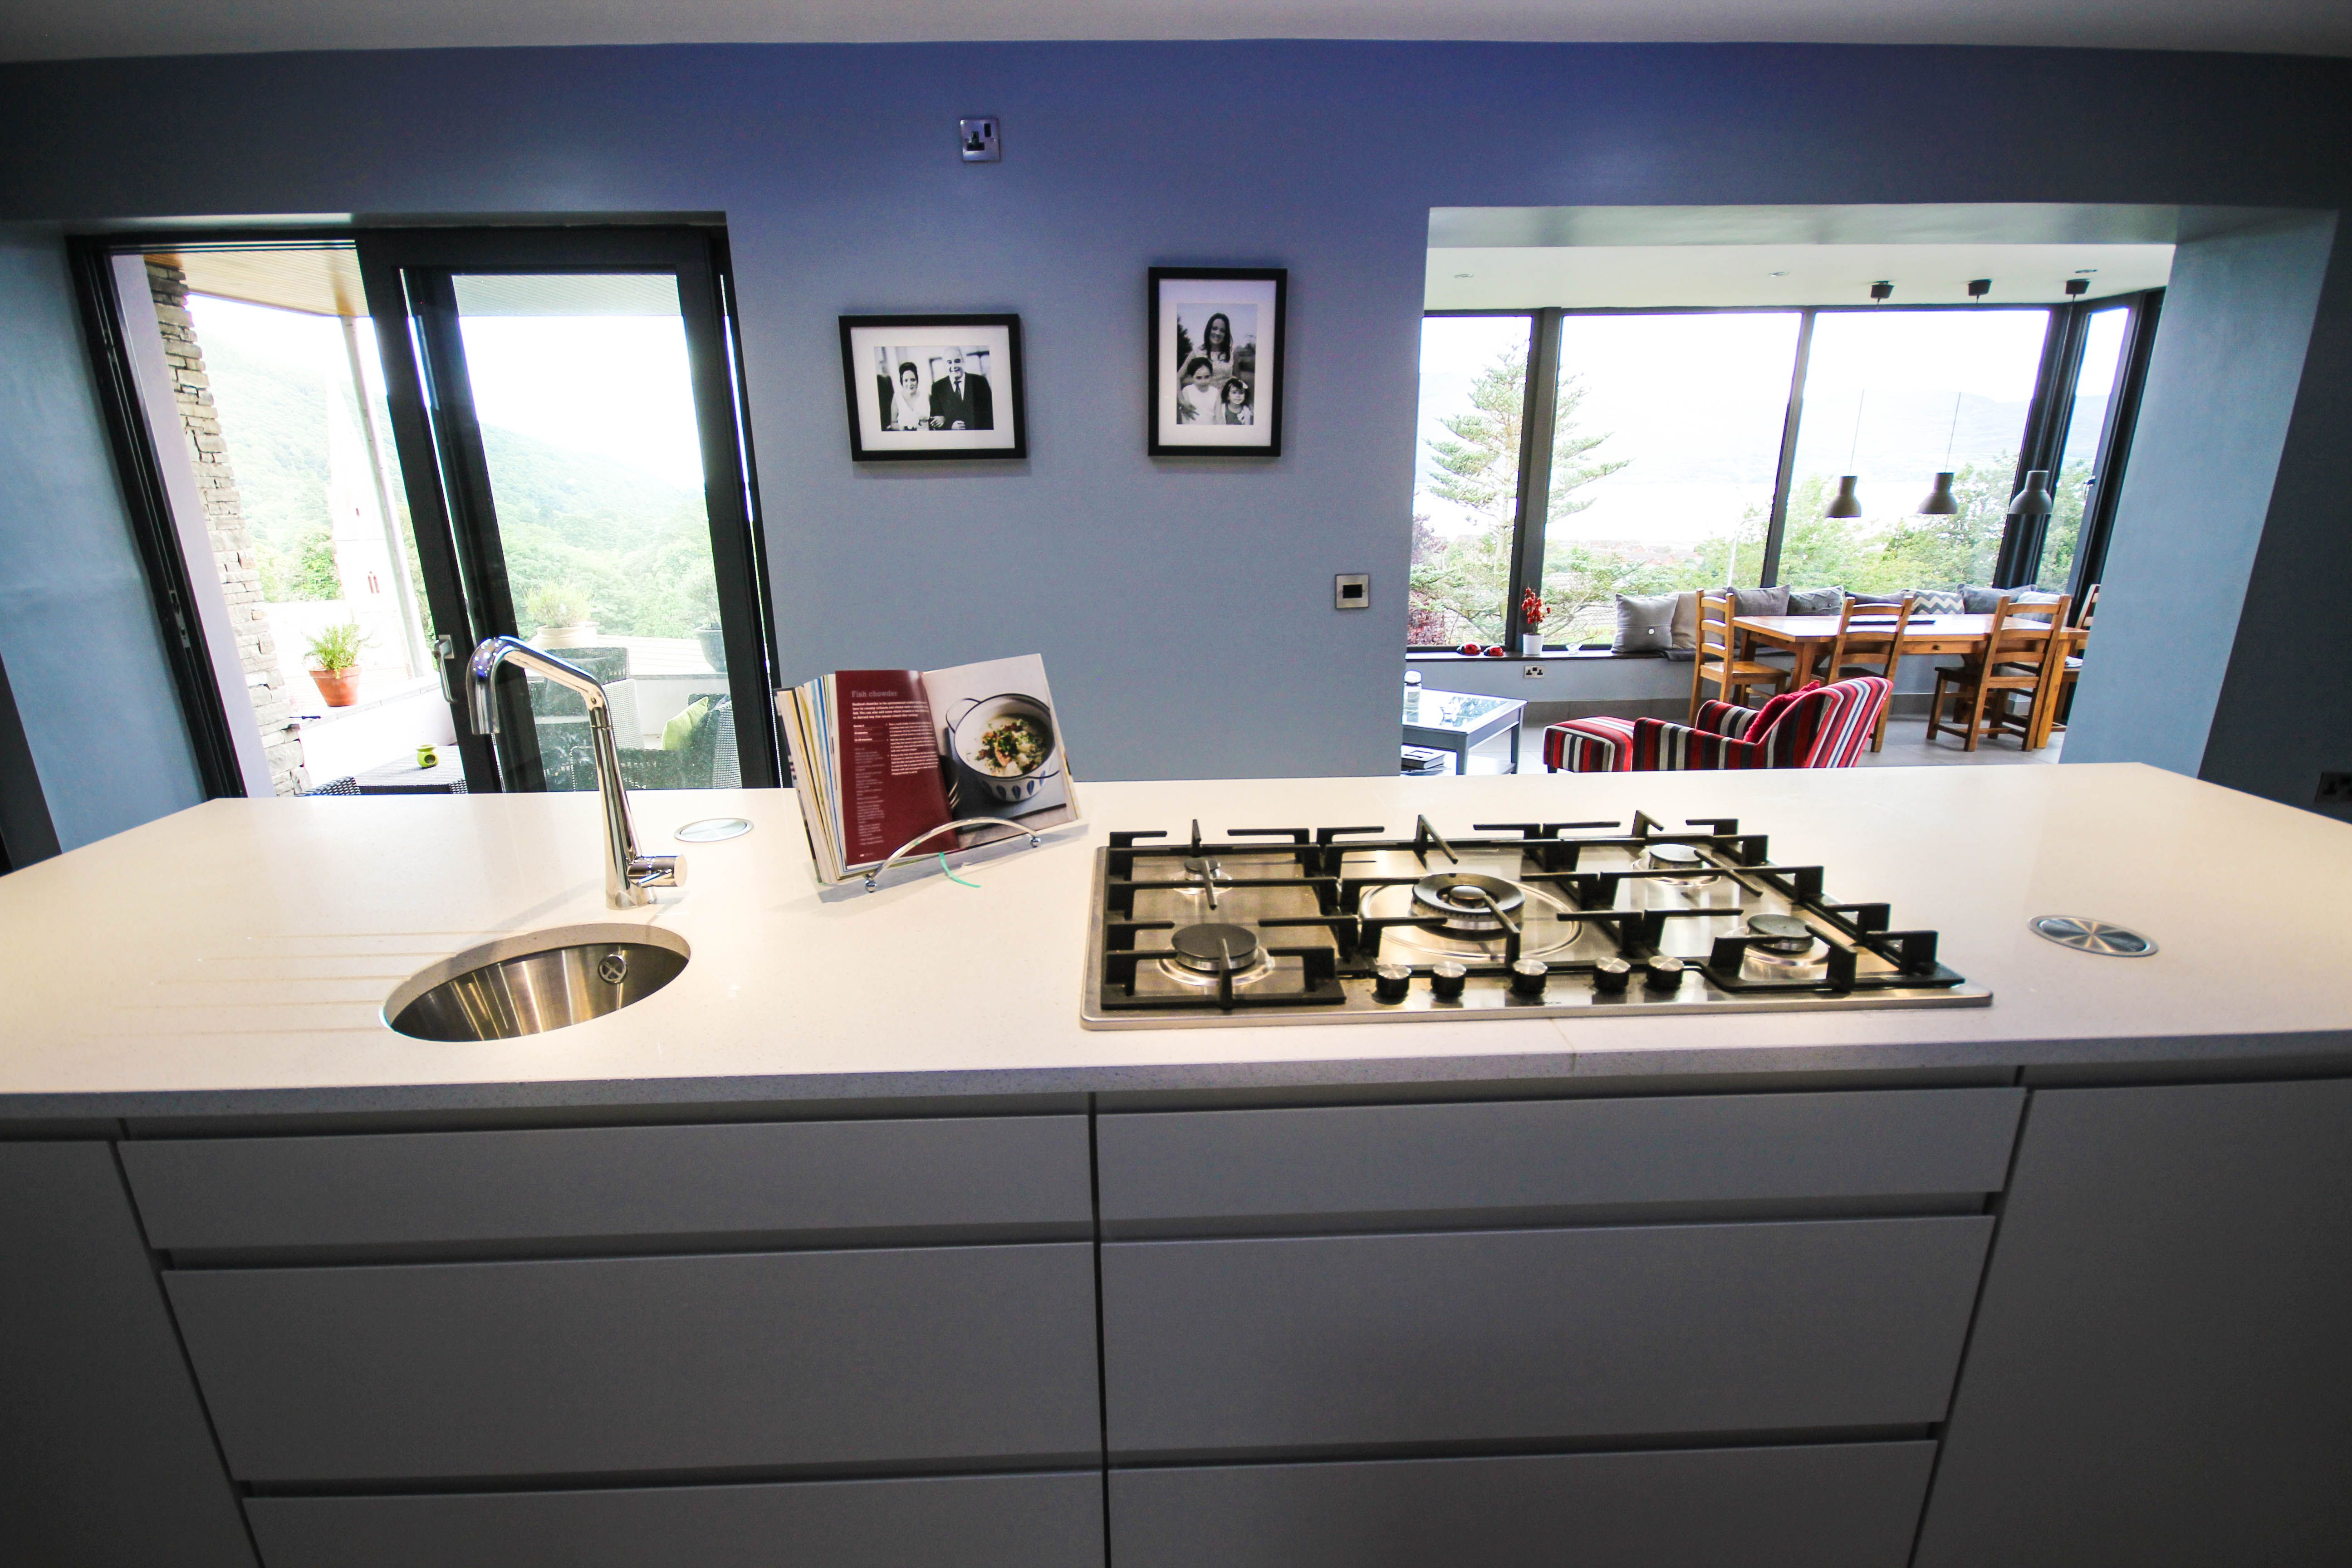 Oven In Island Unit This Island Unit Combines A Gas Hob Circular Sink And